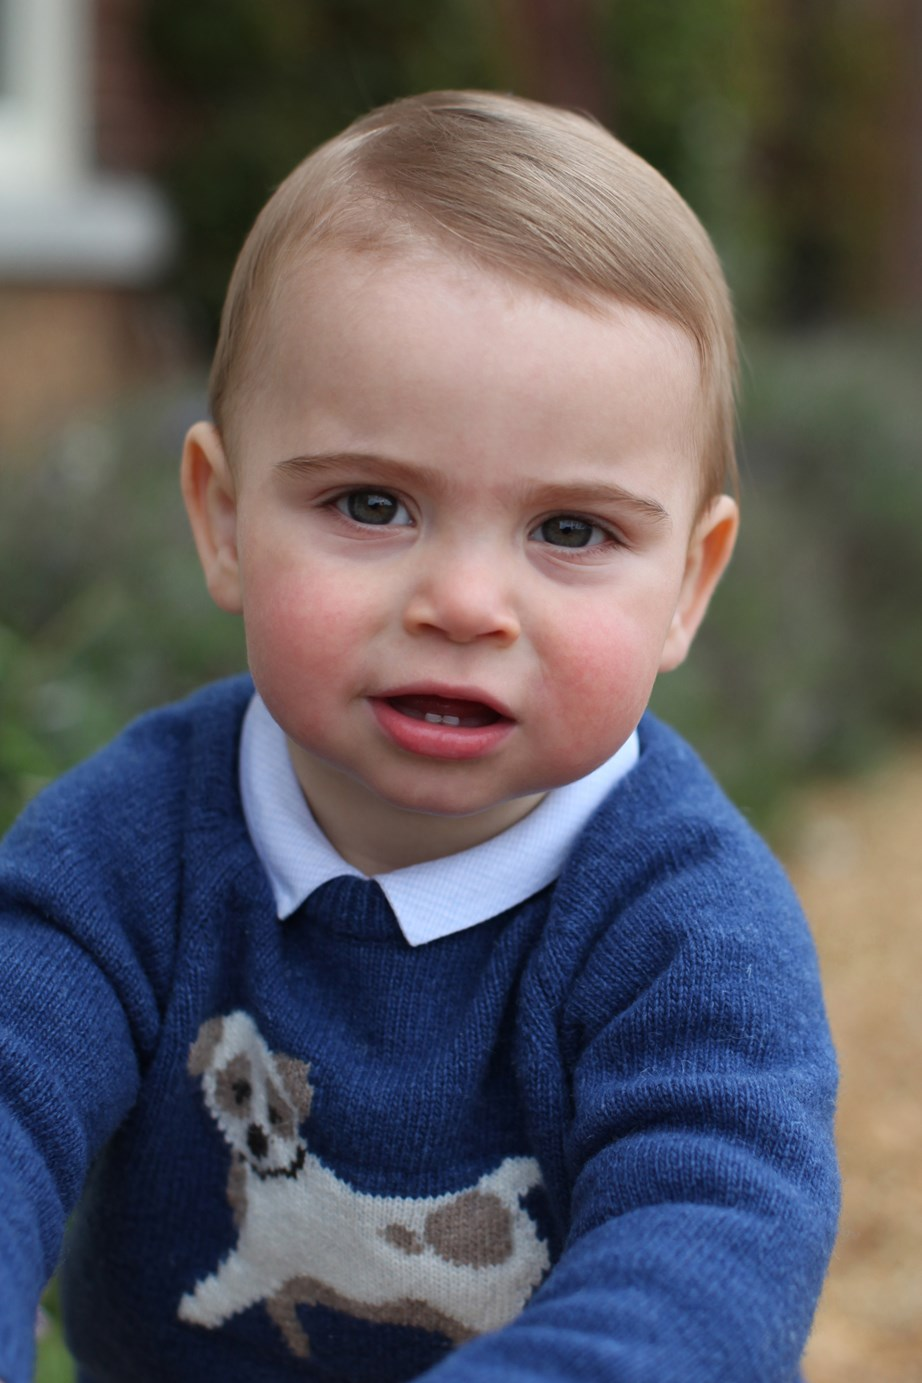 Prince Louis looks all grown up in new official portraits released by Kensington Palace. *(Image: Duchess of Cambridge via Getty)*